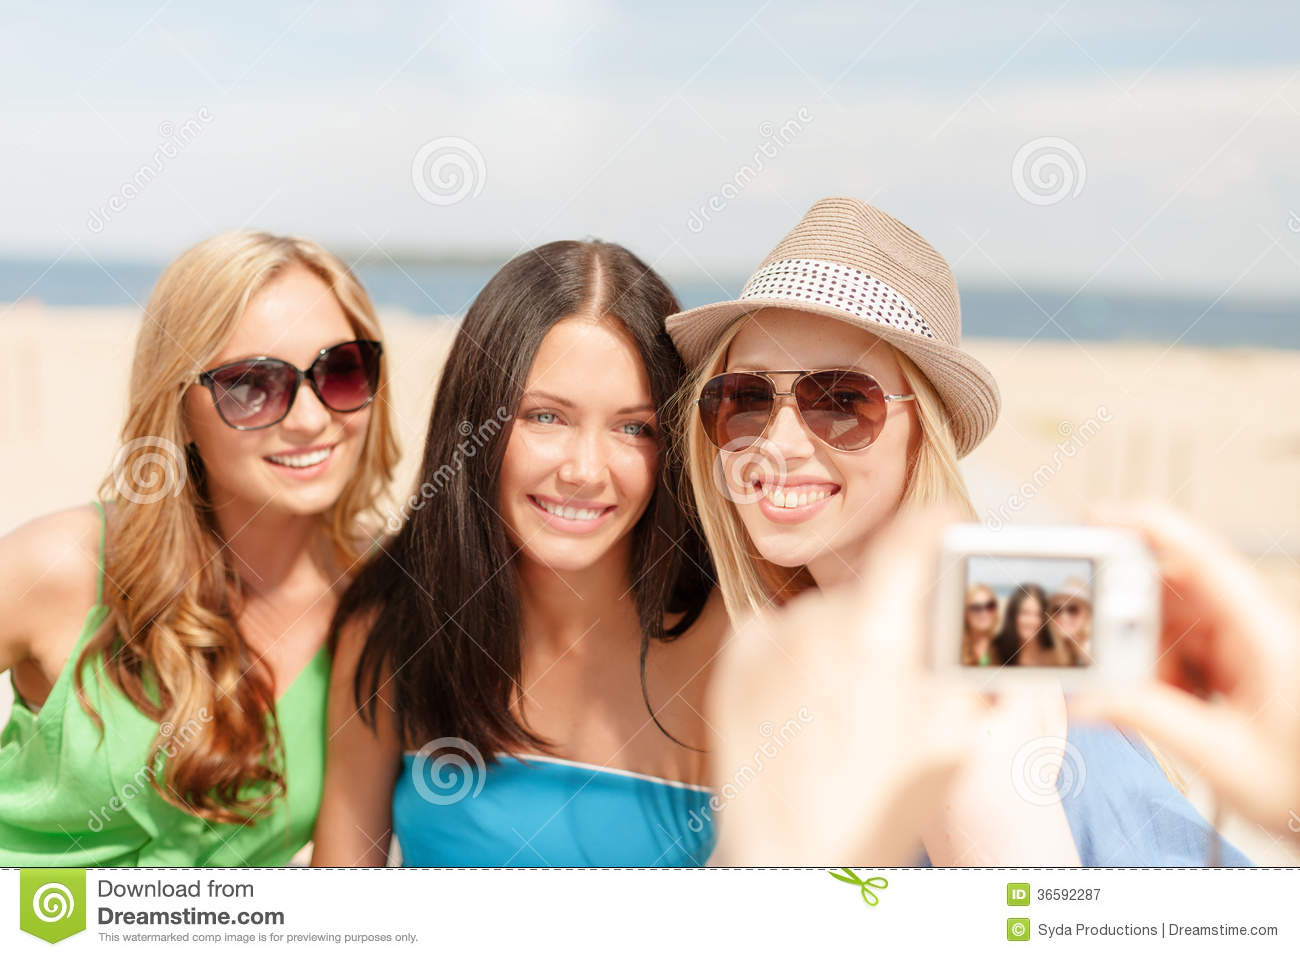 Girls Taking Photo With Digital Camera In Cafe Stock Image